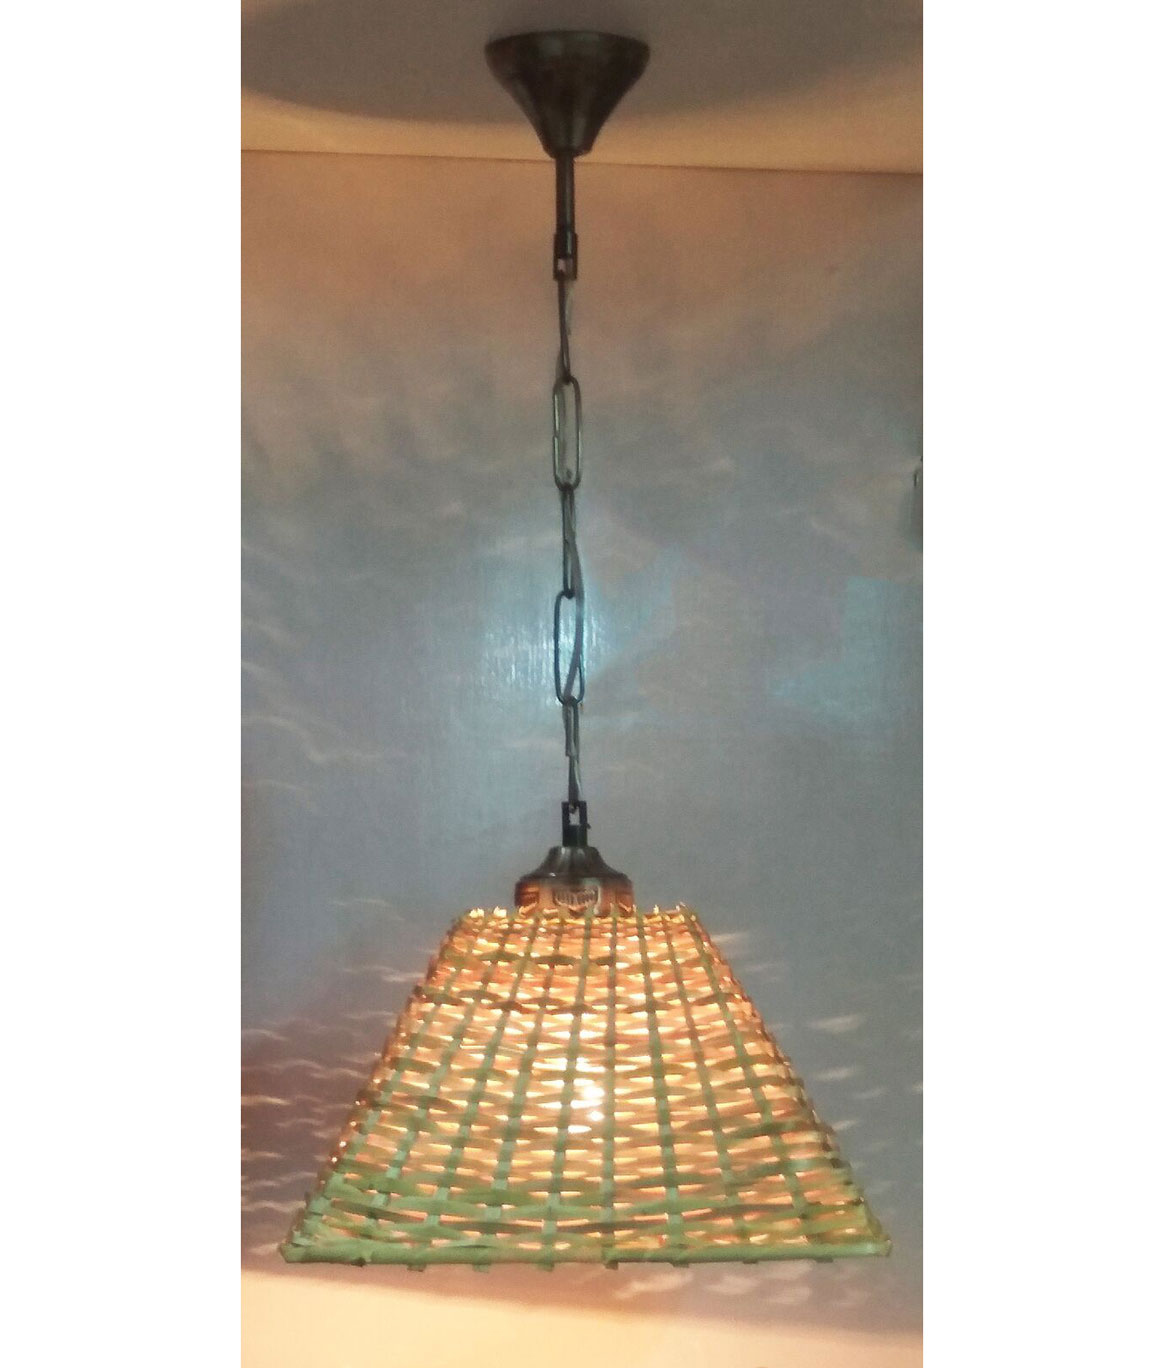 RDC 10 Inches Square Cane Ceiling Hanging Pendant Lamp Shade with Wired Metal Chain